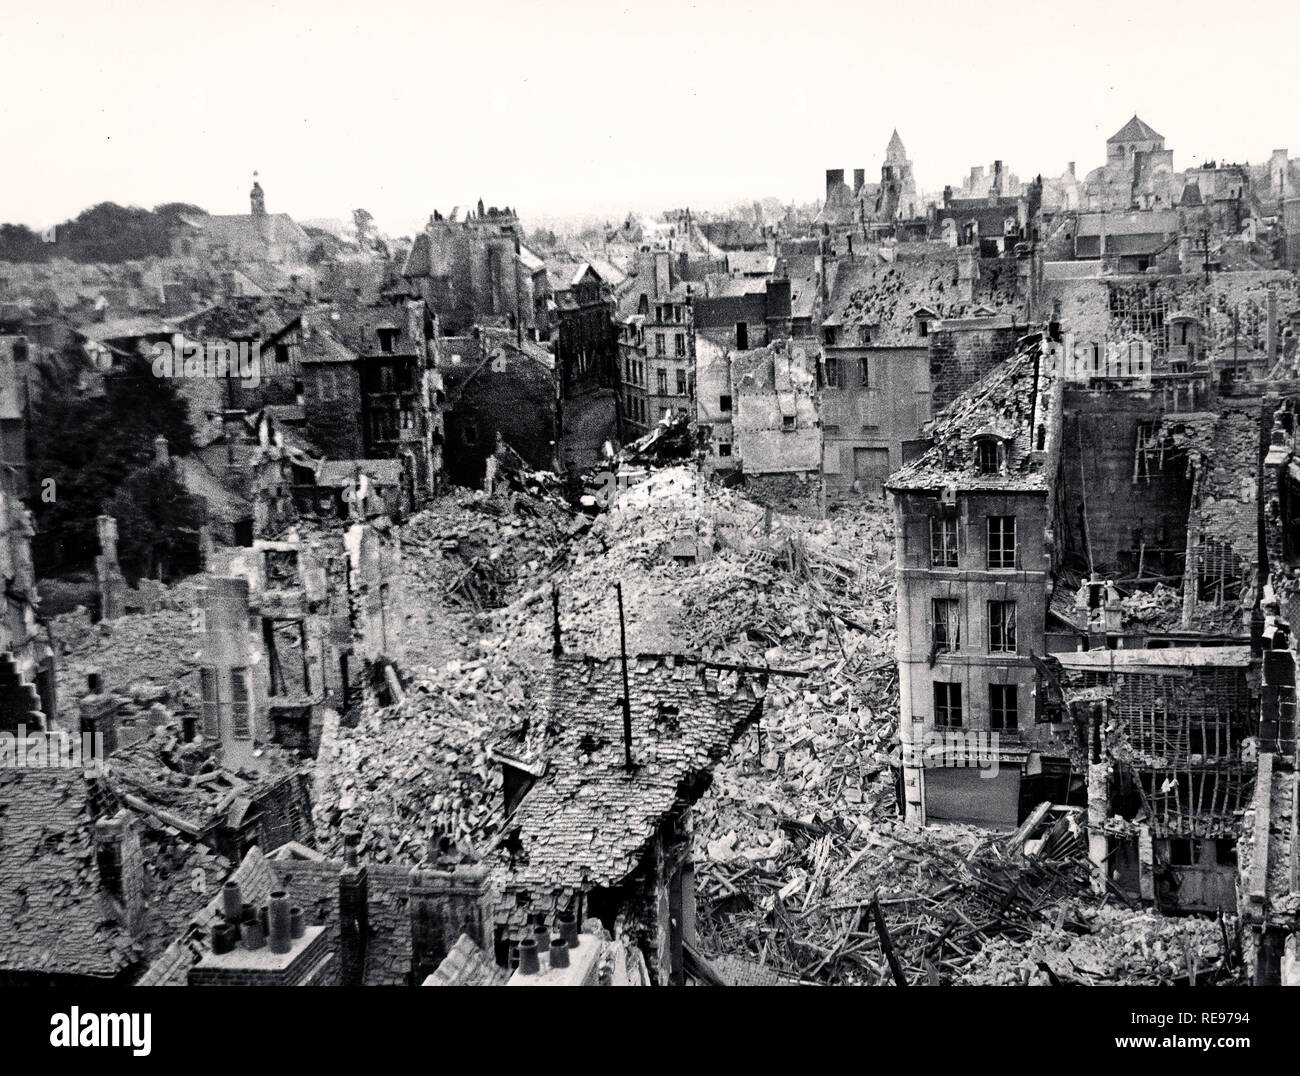 Vintage WW2 image of CAEN NORMANDY with widespread catastrophic distruction caused by Allied bombing of Caen (Normandy, France) in 1944 Operation Overlord 6th June-6th August Part of the Allied landings on the northern beach heads French coast 6th June 1944 D-Day - Stock Image